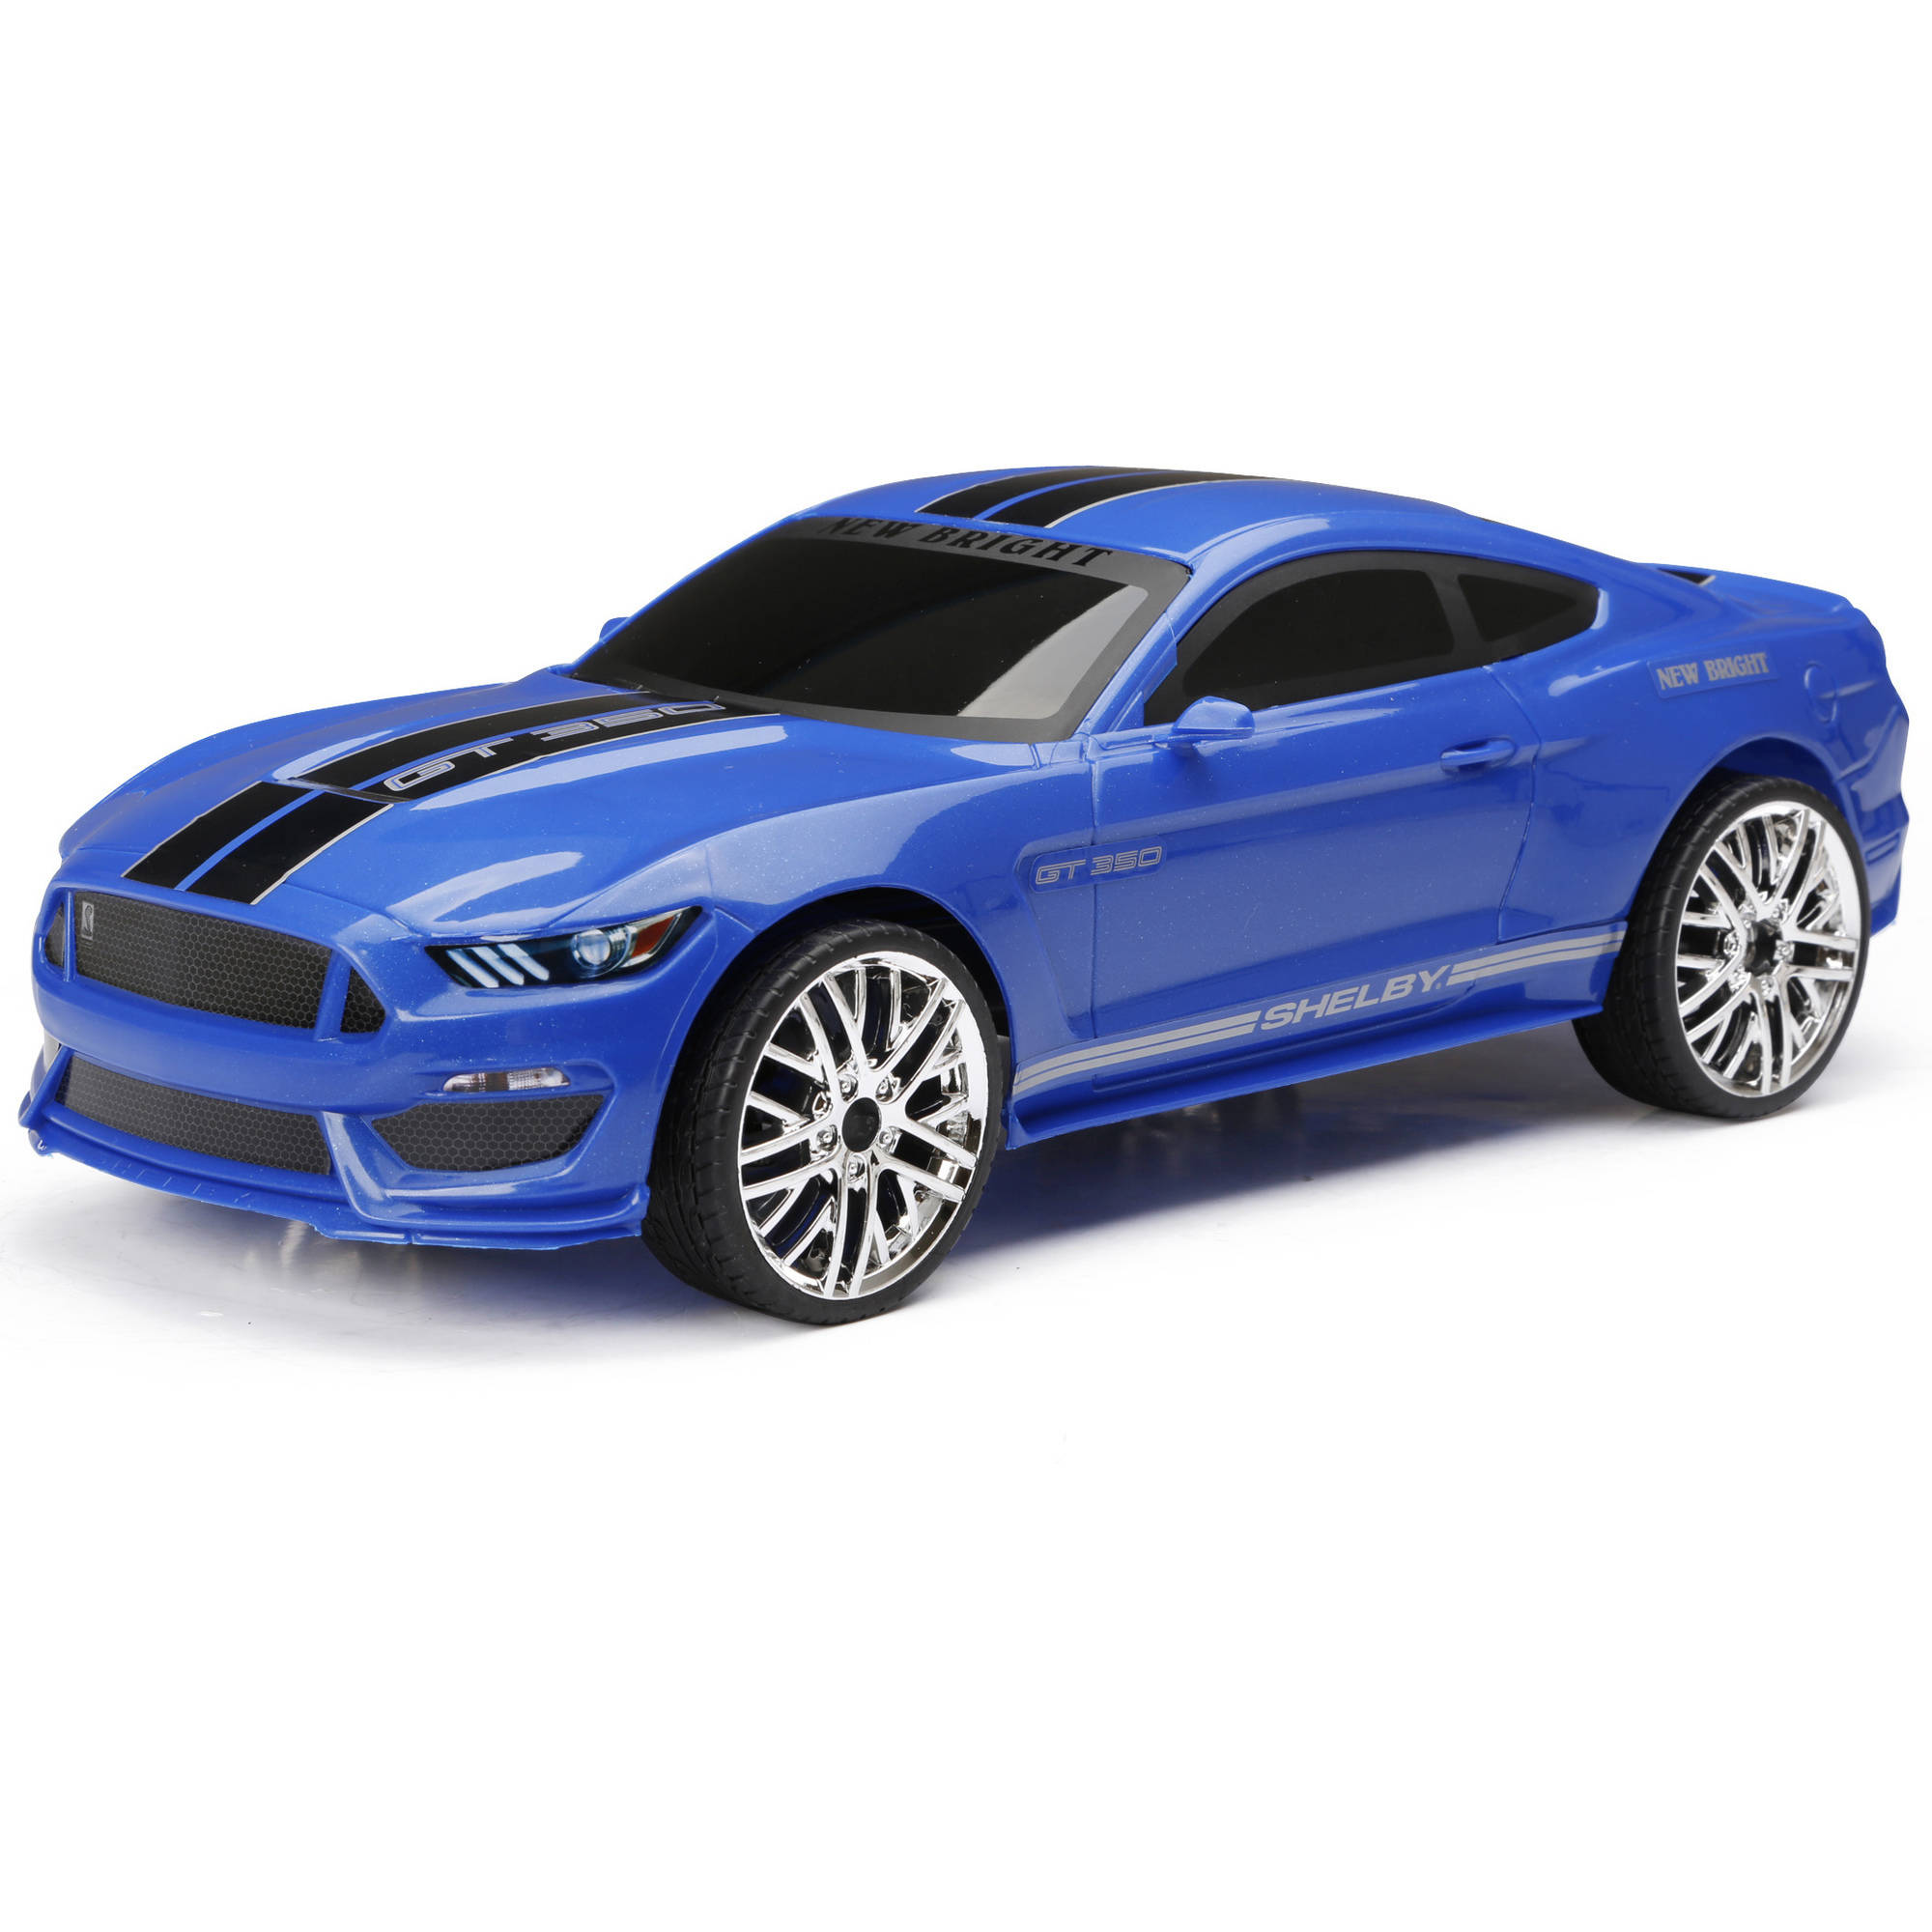 New Bright R C Chargers Mustang Car Blue Walmart